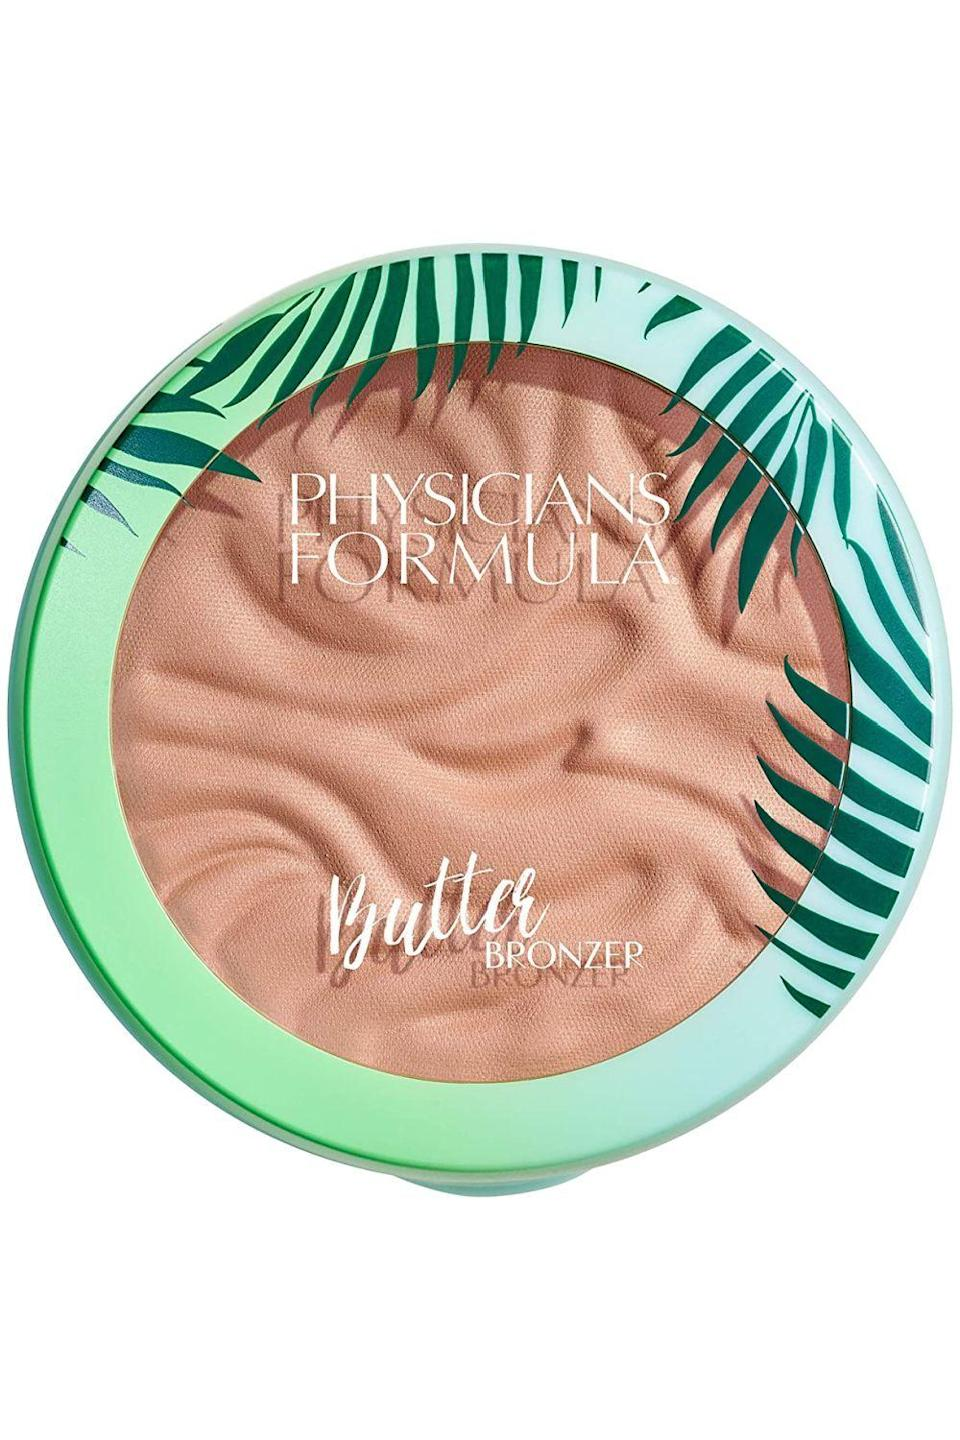 """<p><strong>Physicians Formula</strong></p><p>amazon.com</p><p><strong>$10.70</strong></p><p><a href=""""https://www.amazon.com/dp/B018B8Q5Z6?tag=syn-yahoo-20&ascsubtag=%5Bartid%7C2140.g.35717314%5Bsrc%7Cyahoo-us"""" rel=""""nofollow noopener"""" target=""""_blank"""" data-ylk=""""slk:shop"""" class=""""link rapid-noclick-resp"""">shop</a></p><p>Raise your hand if you love a good <a href=""""https://www.cosmopolitan.com/style-beauty/beauty/g15773998/best-drugstore-makeup-brands-products/"""" rel=""""nofollow noopener"""" target=""""_blank"""" data-ylk=""""slk:drugstore makeup"""" class=""""link rapid-noclick-resp"""">drugstore makeup</a> find. Good, so that makes everyone! If you <a href=""""https://www.cosmopolitan.com/style-beauty/beauty/advice/g1416/how-to-use-bronzer/"""" rel=""""nofollow noopener"""" target=""""_blank"""" data-ylk=""""slk:use bronzer"""" class=""""link rapid-noclick-resp"""">use bronzer</a> and have yet to try this deliciously scented formula, you're seriously missing out. </p>"""